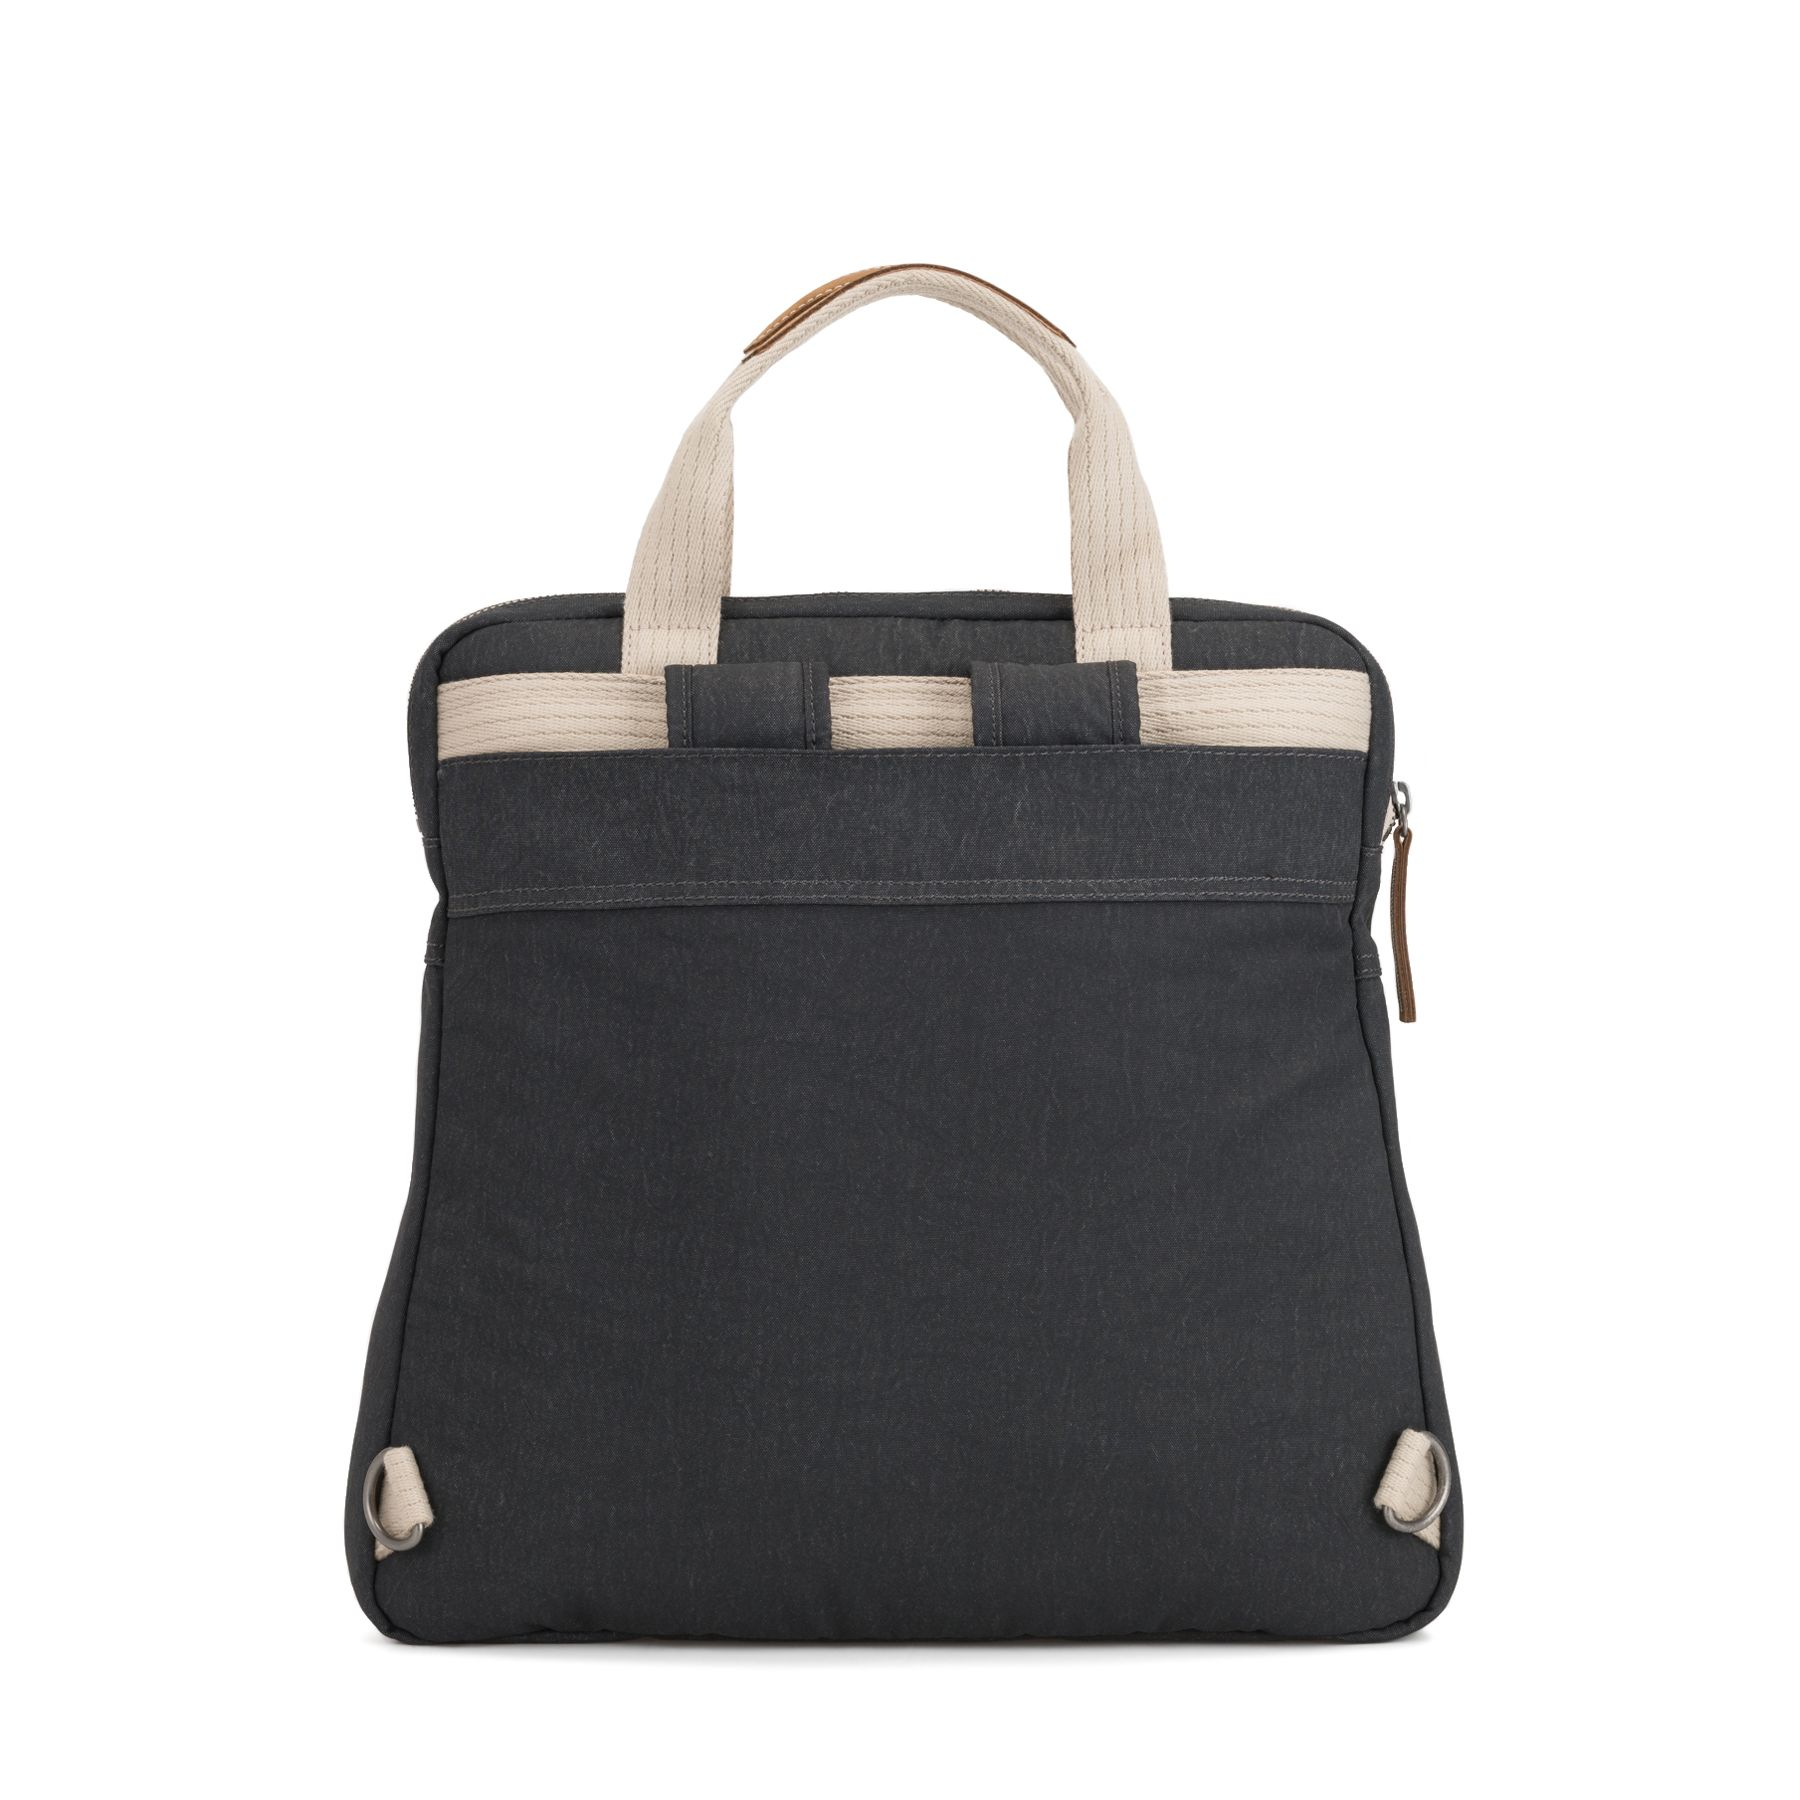 KOMORI S Working Bags by Kipling - view 5